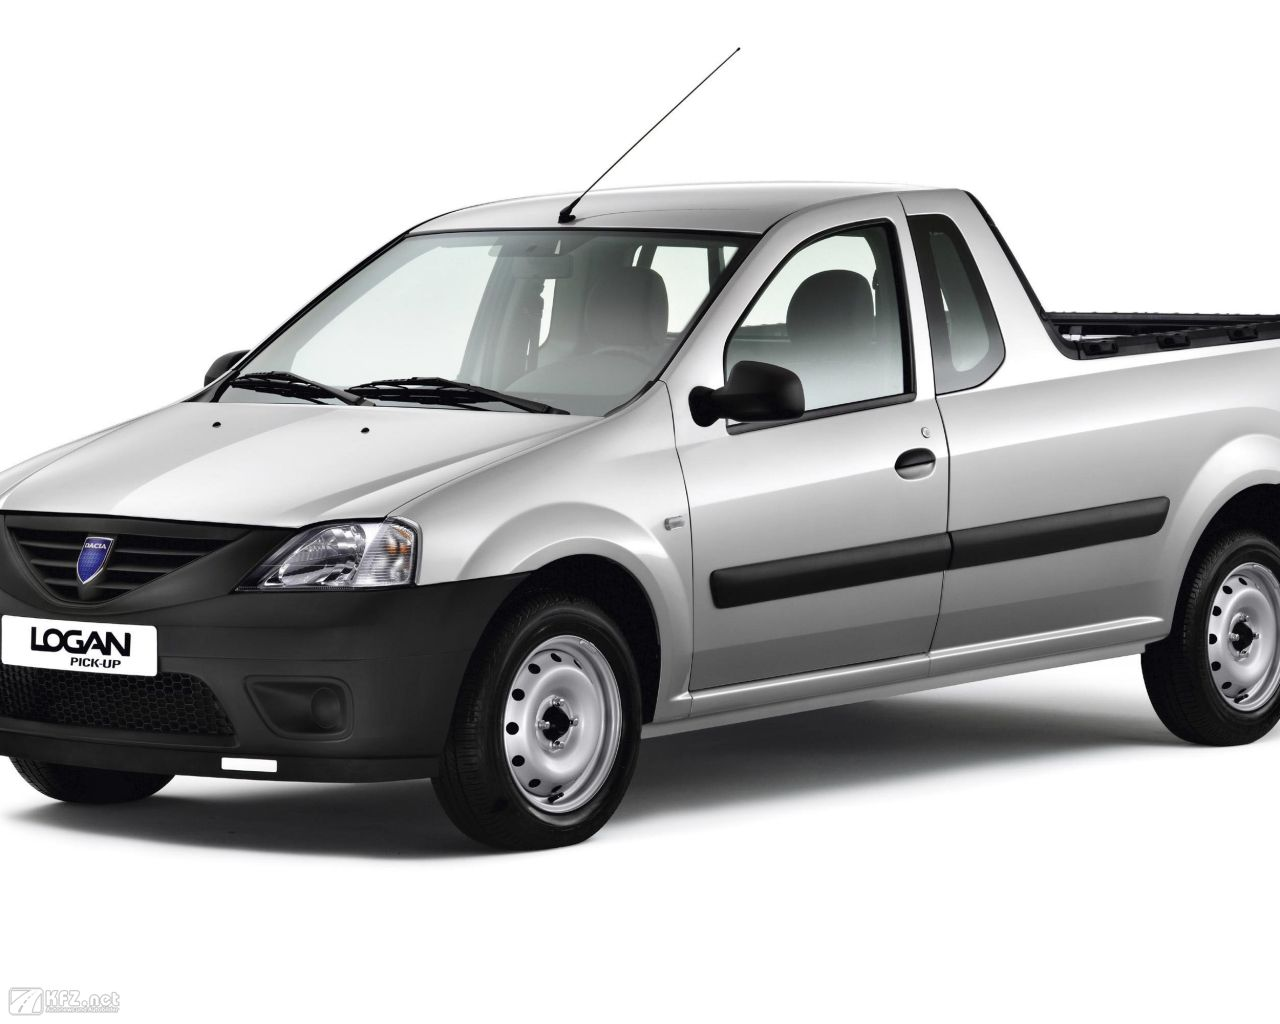 dacia-pick-up-1280x1024-110